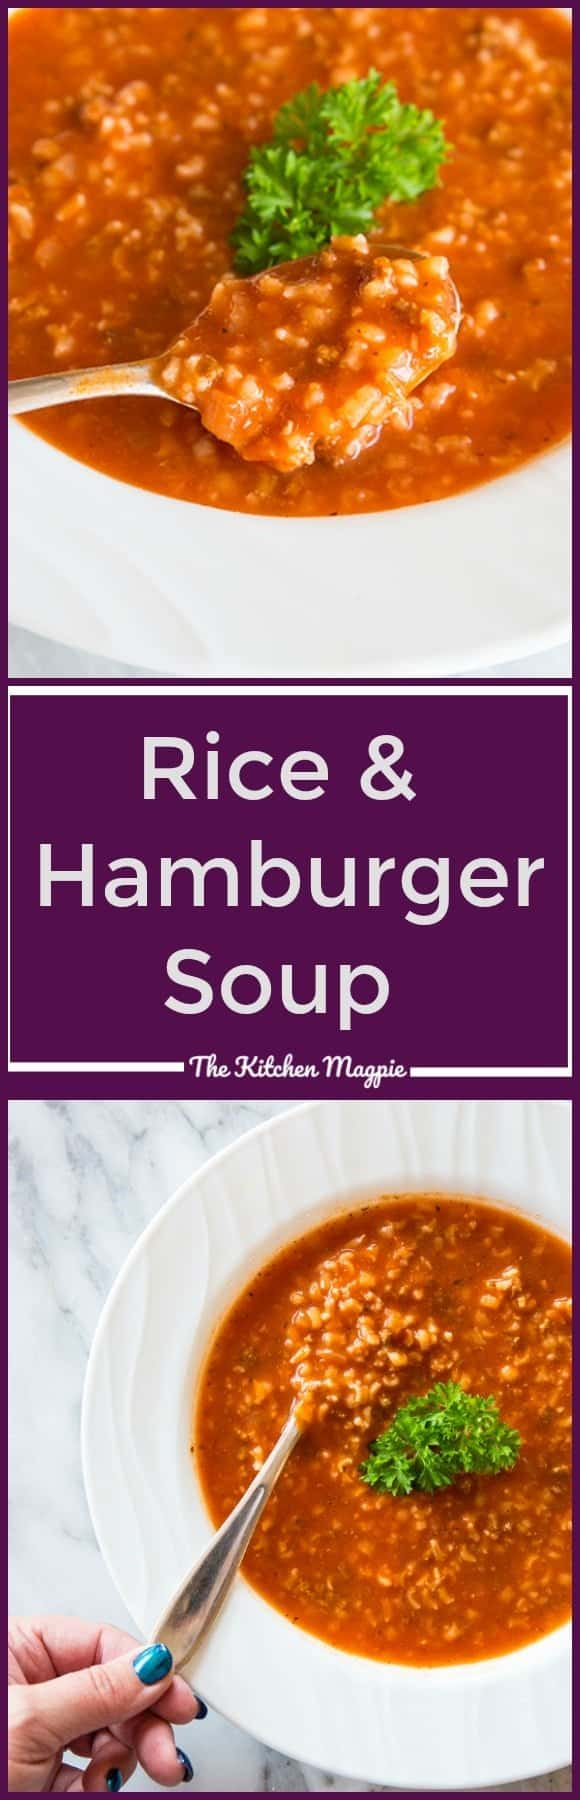 This Simple Tomato & Rice Hamburger Soup maybe be almost too easy to make, but you can't tell from the fabulous flavour! It also happens to be totally gluten free, as long as you check all of your sauces! Recipe from @kitchenmagpie. #recipe #soup #hamburger